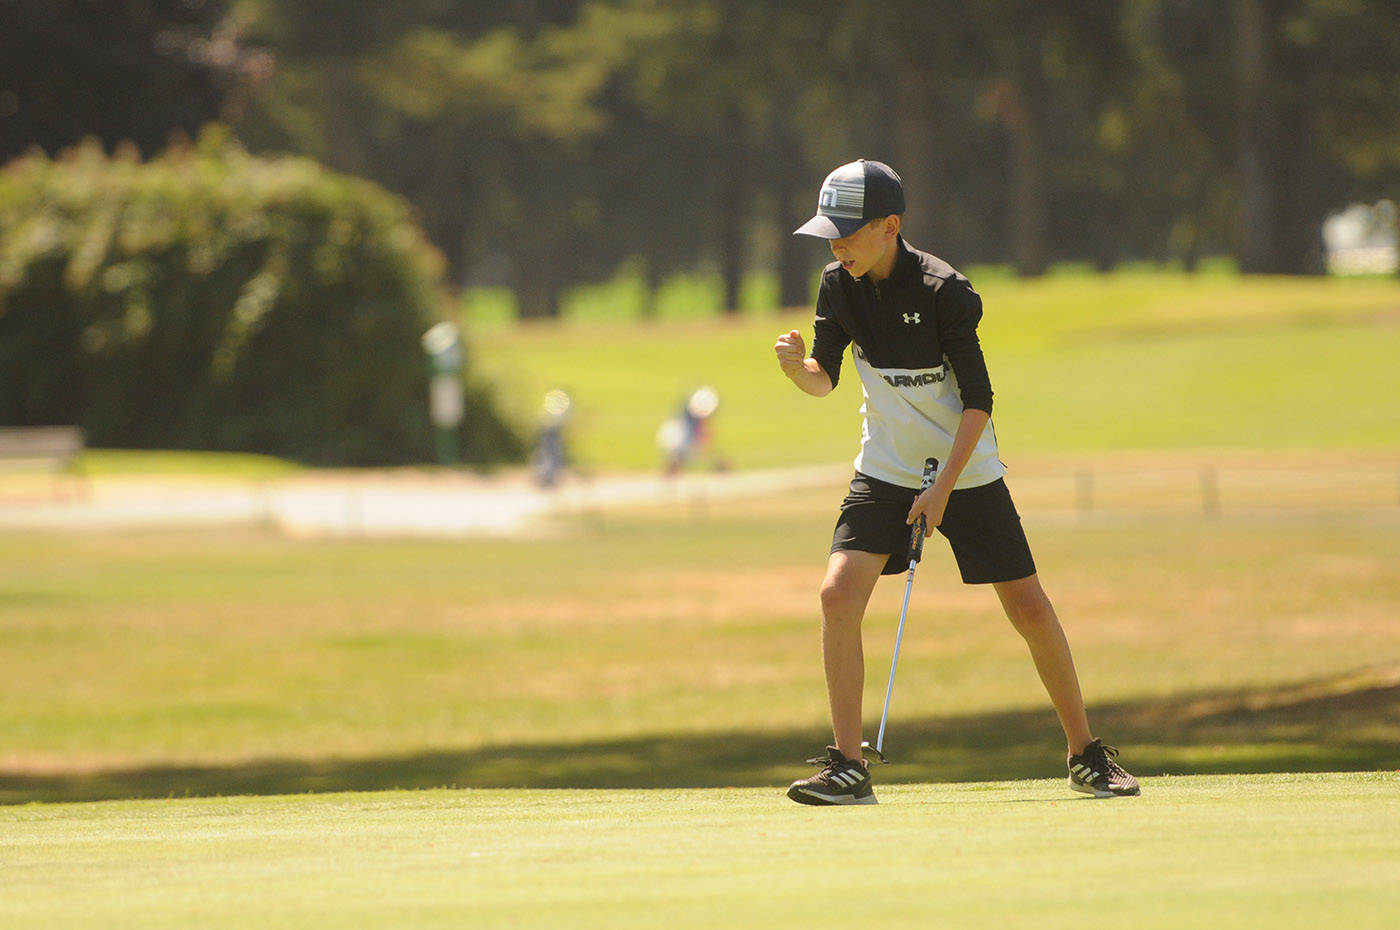 Chilliwack's Owen Hopfner celebrates a successful putt on the third green at Chilliwack Golf Club during the final round of the 2021 Optimist Fred Wellsby Junior Divot golf tournament on Thursday, July 15, 2021. (Jenna Hauck/ Chilliwack Progress)